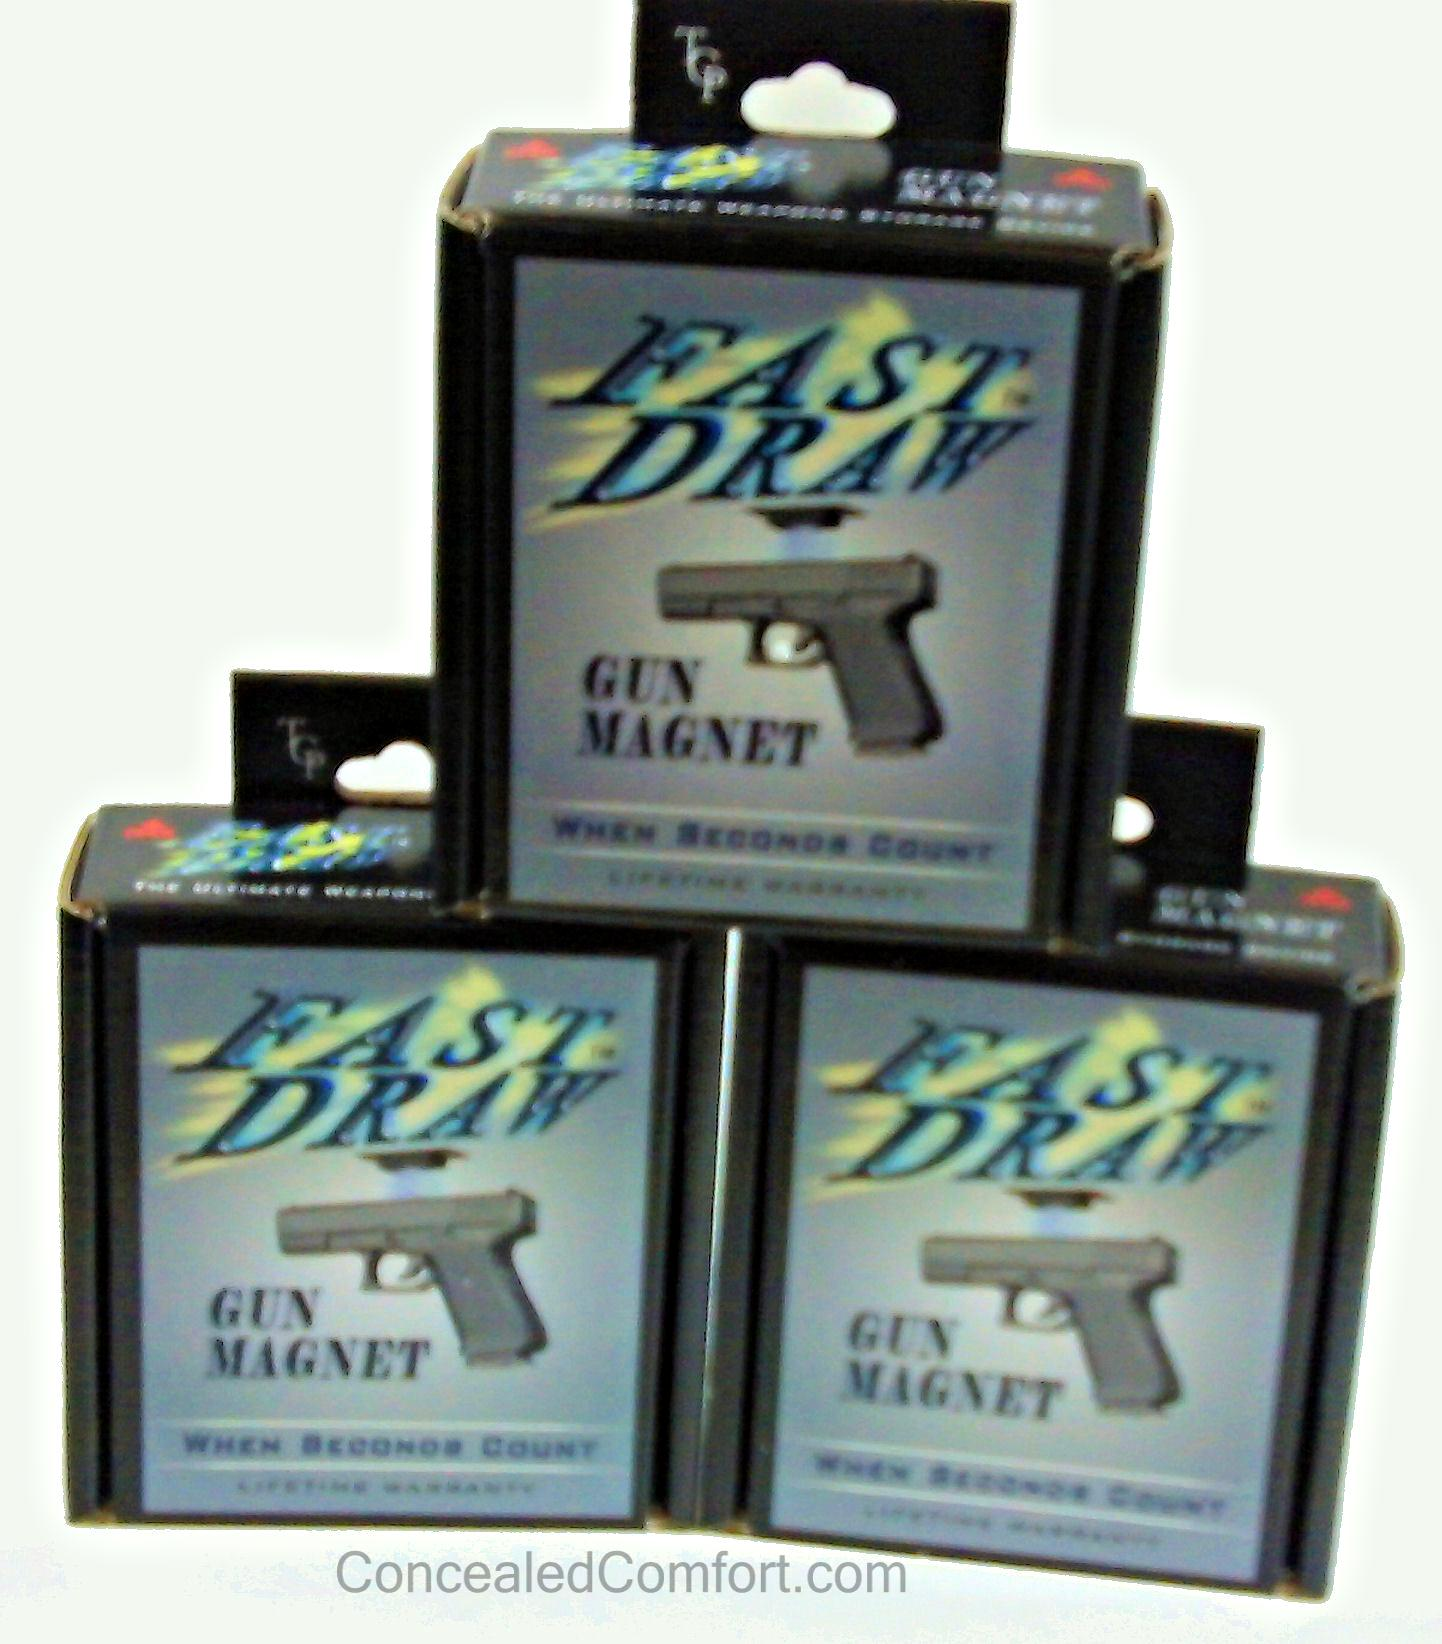 Fast Draw Gun Magnets available at ConcealedComfort.com